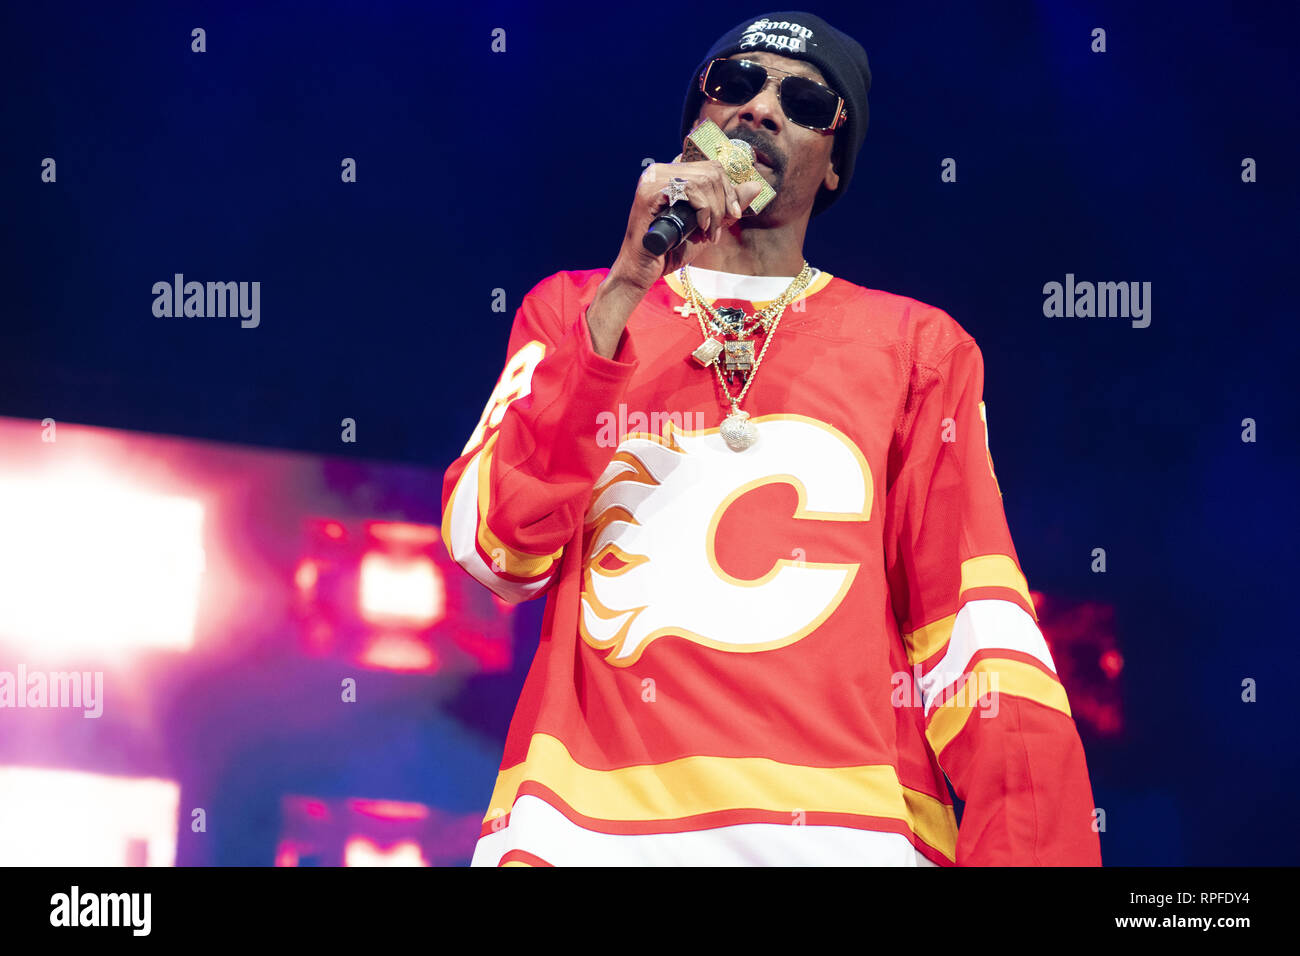 Calgary, Alberta, Canada  21st Feb, 2019  Snoop Dogg